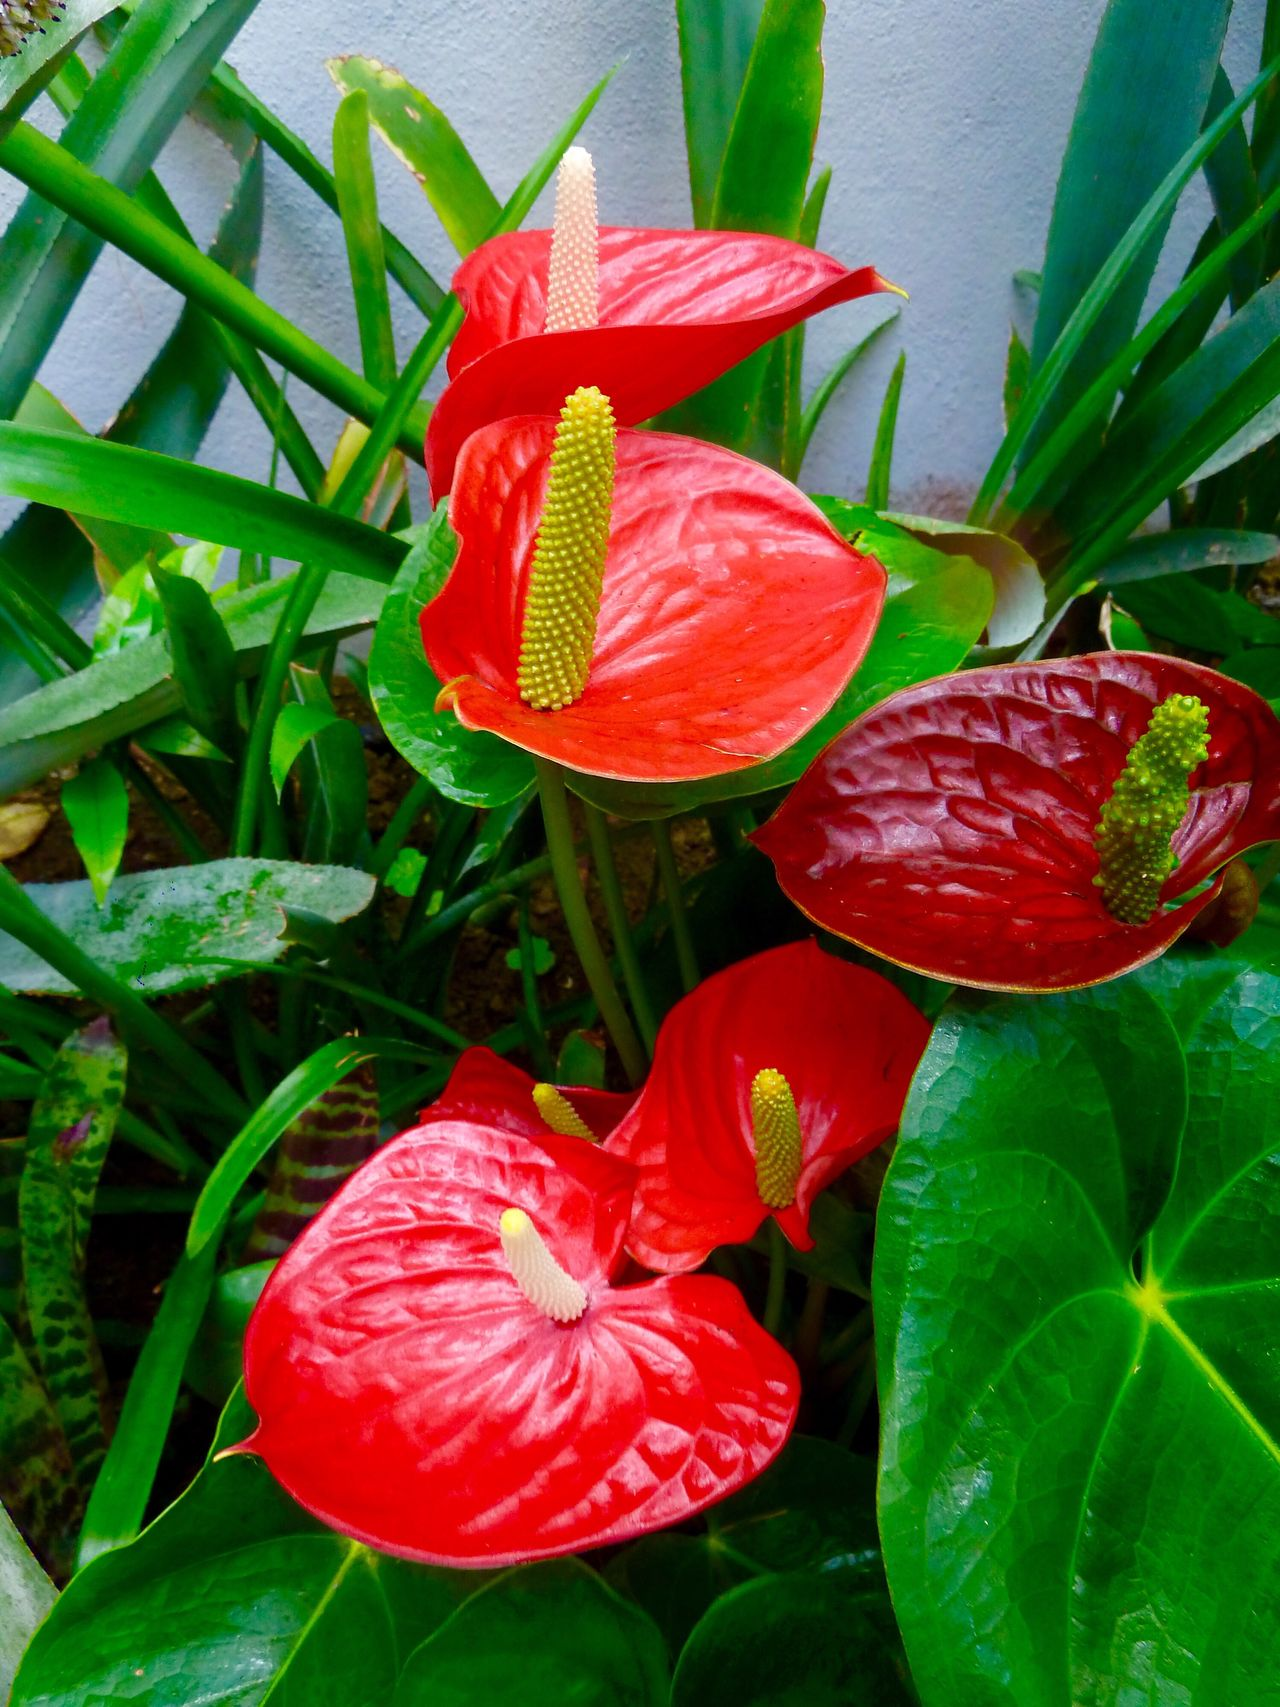 Anthurium Plants And Flowers Estepona Orchid House SPAIN